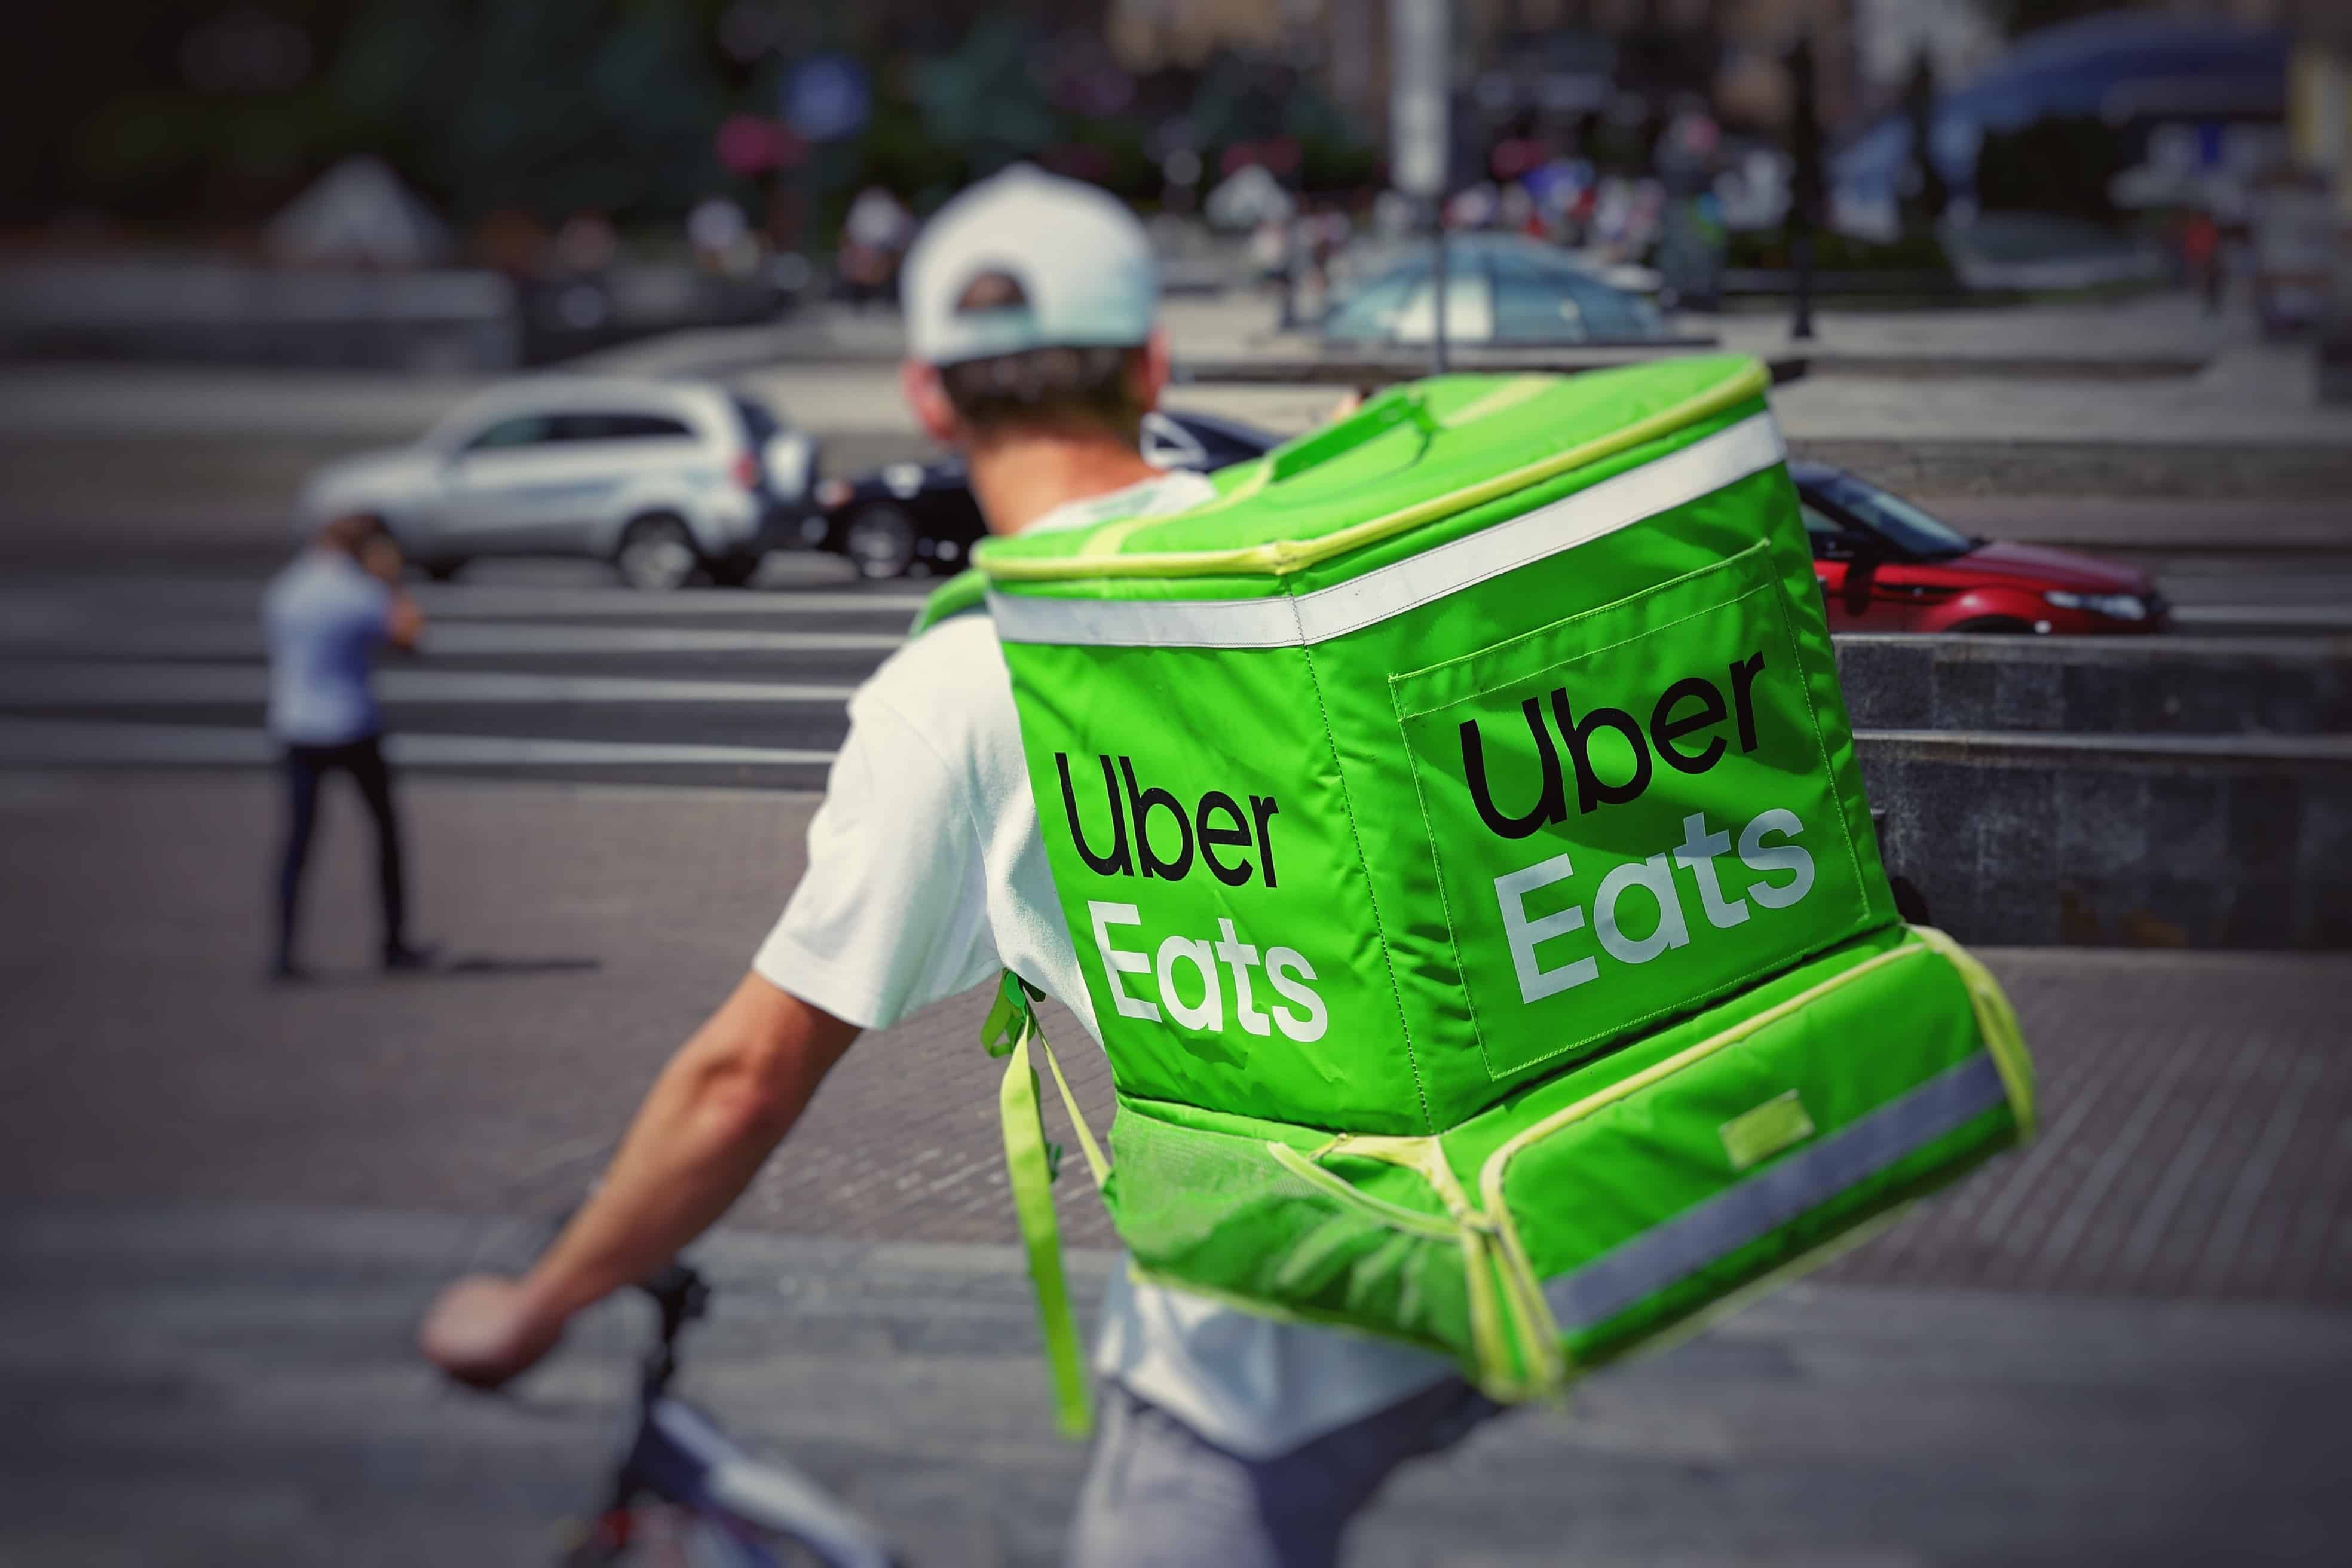 man-wearing-Uber-Eats-backpack-for-food-delivery